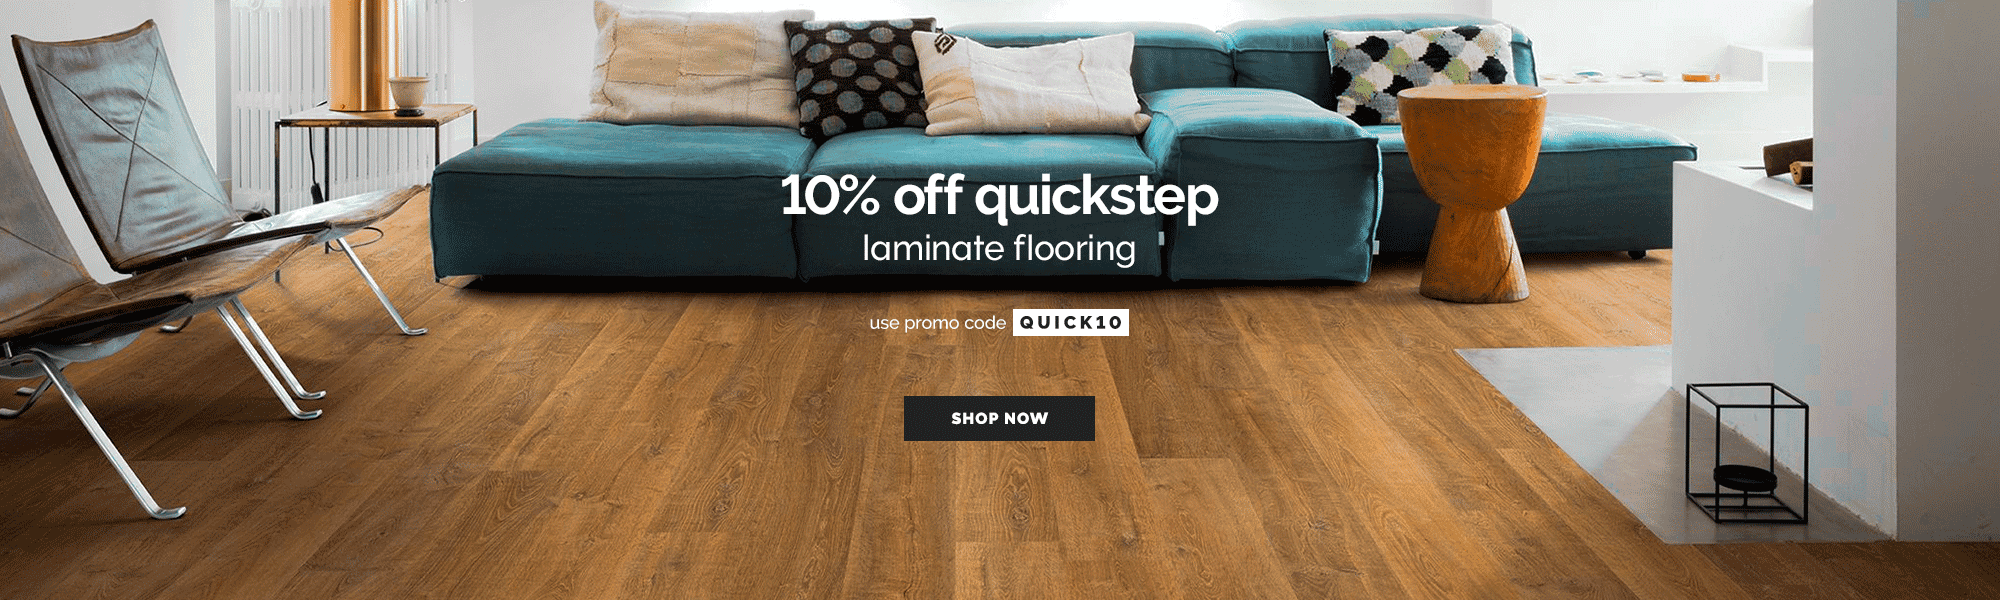 July - 10% off Quickstep